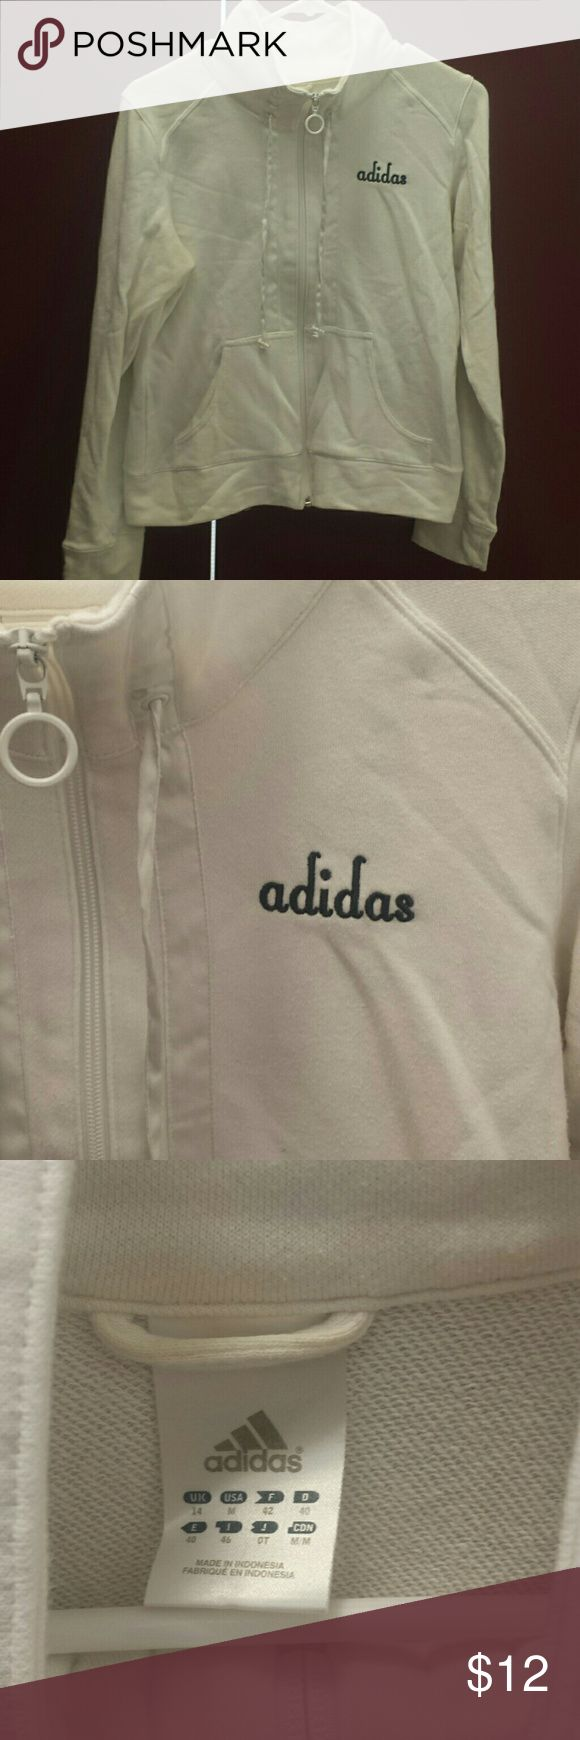 Ladies Adidas Zip Up White Adidas Zip up medium. Lightweight and comfortable. Zips up past your neck, not quite a cowl neck but higher than mock. adidas Tops Sweatshirts & Hoodies